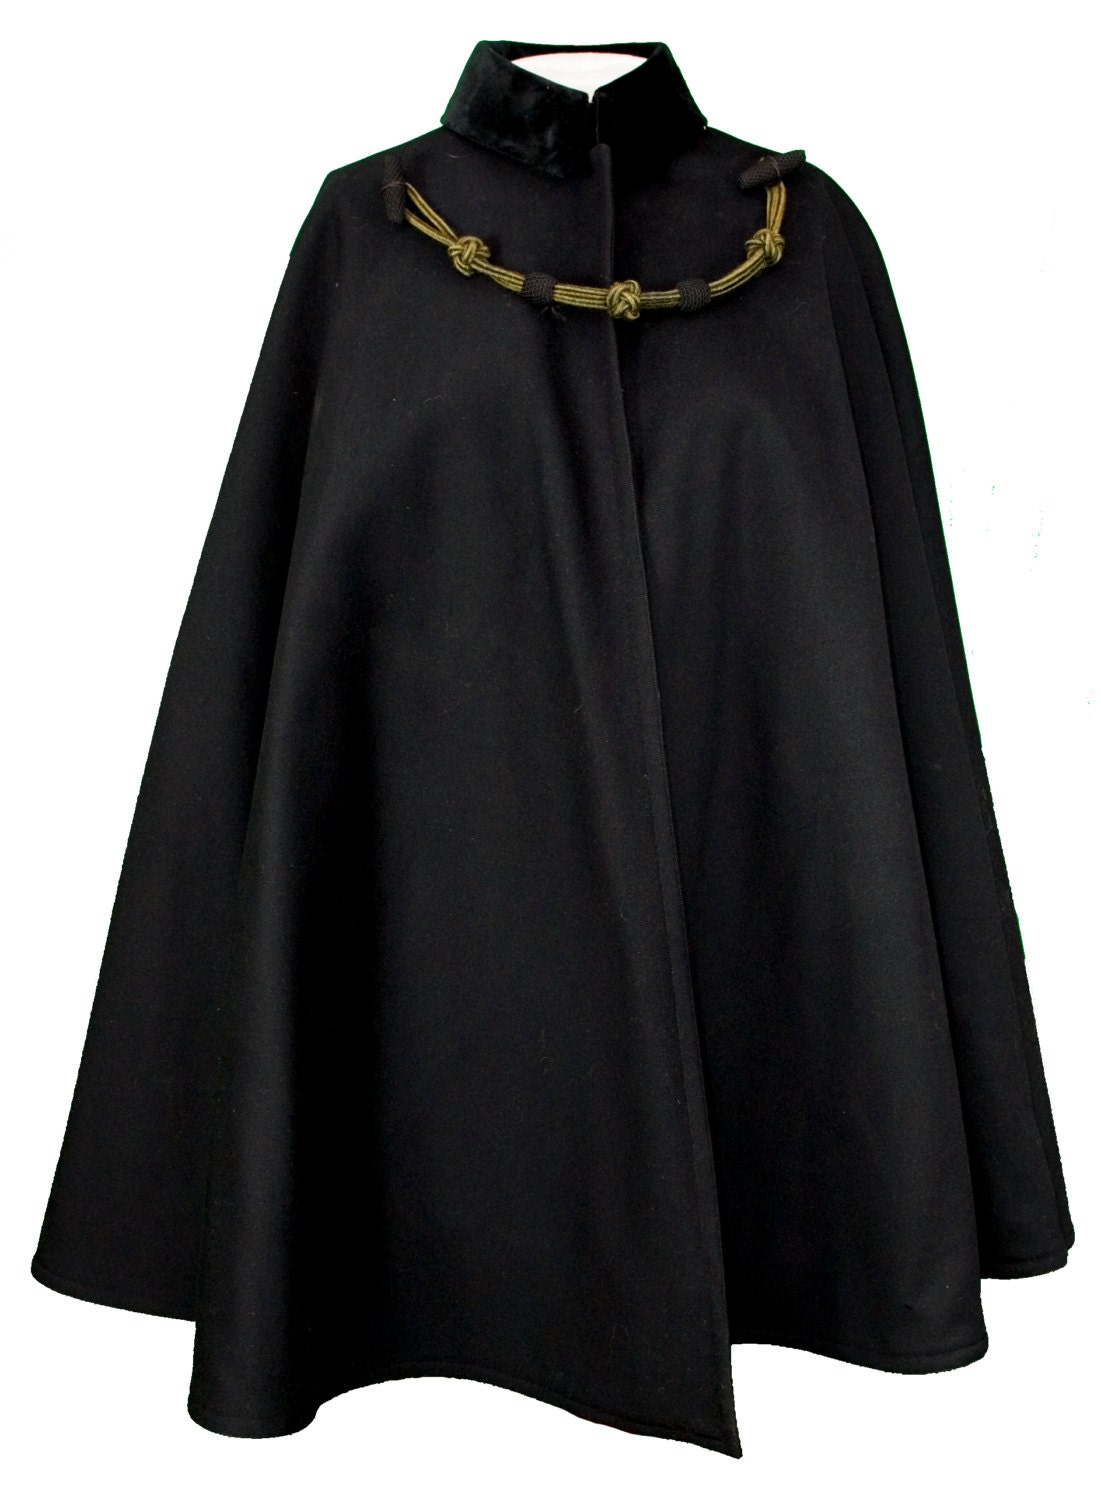 Shop for mens capes and robes. We offer a variety of Renaissance dresses and medieval clothing for women and men.